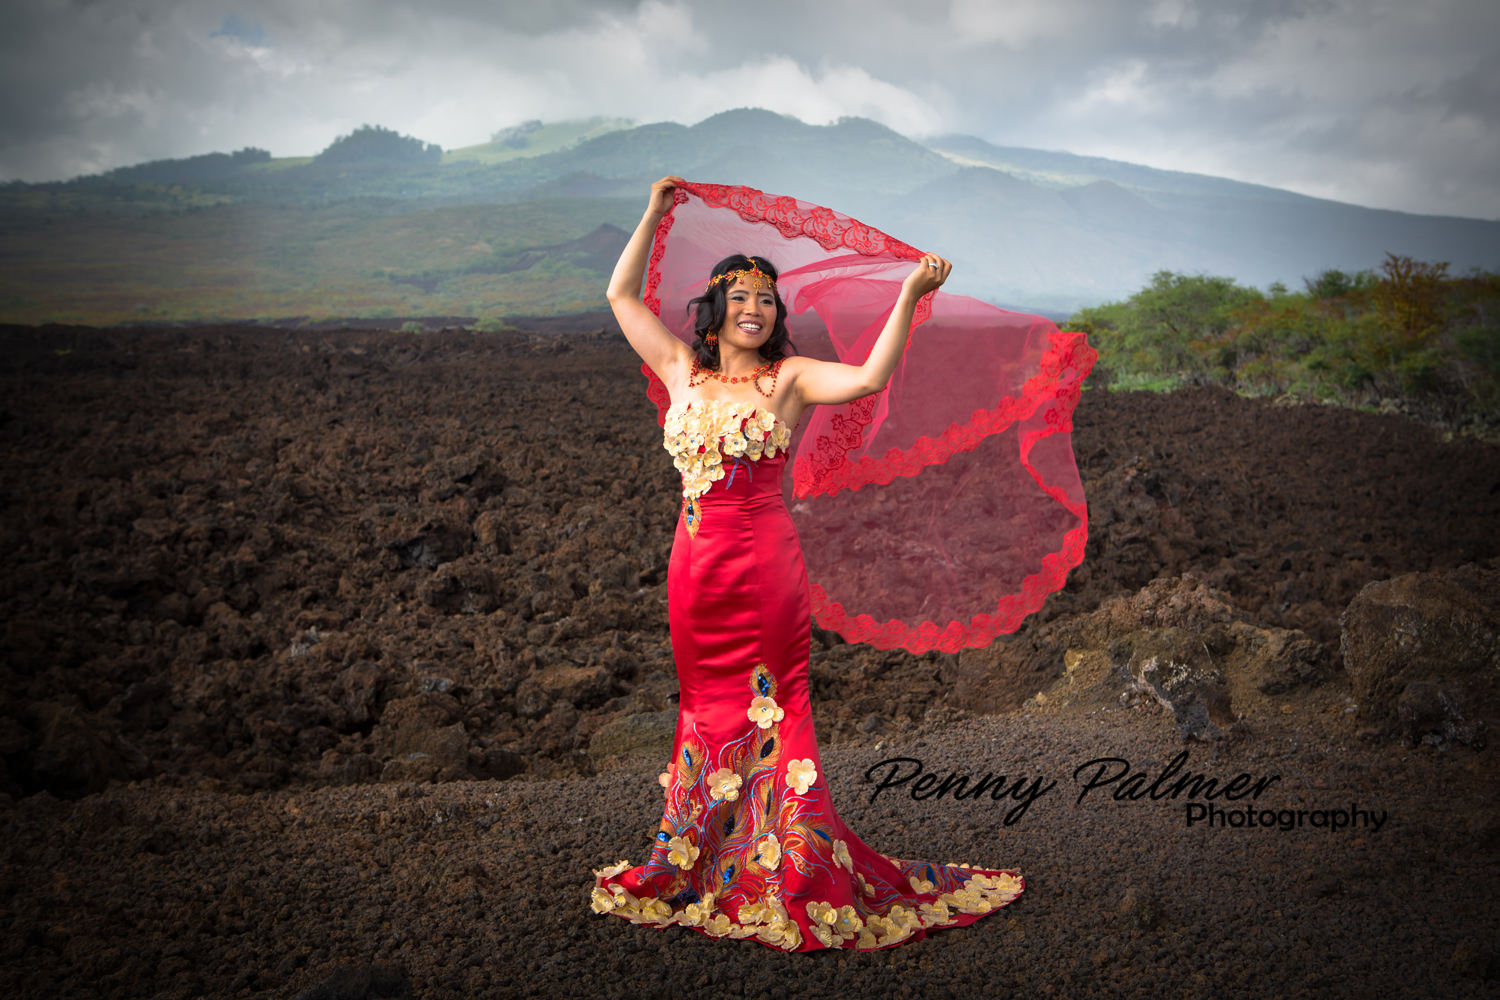 affordable Maui photographer